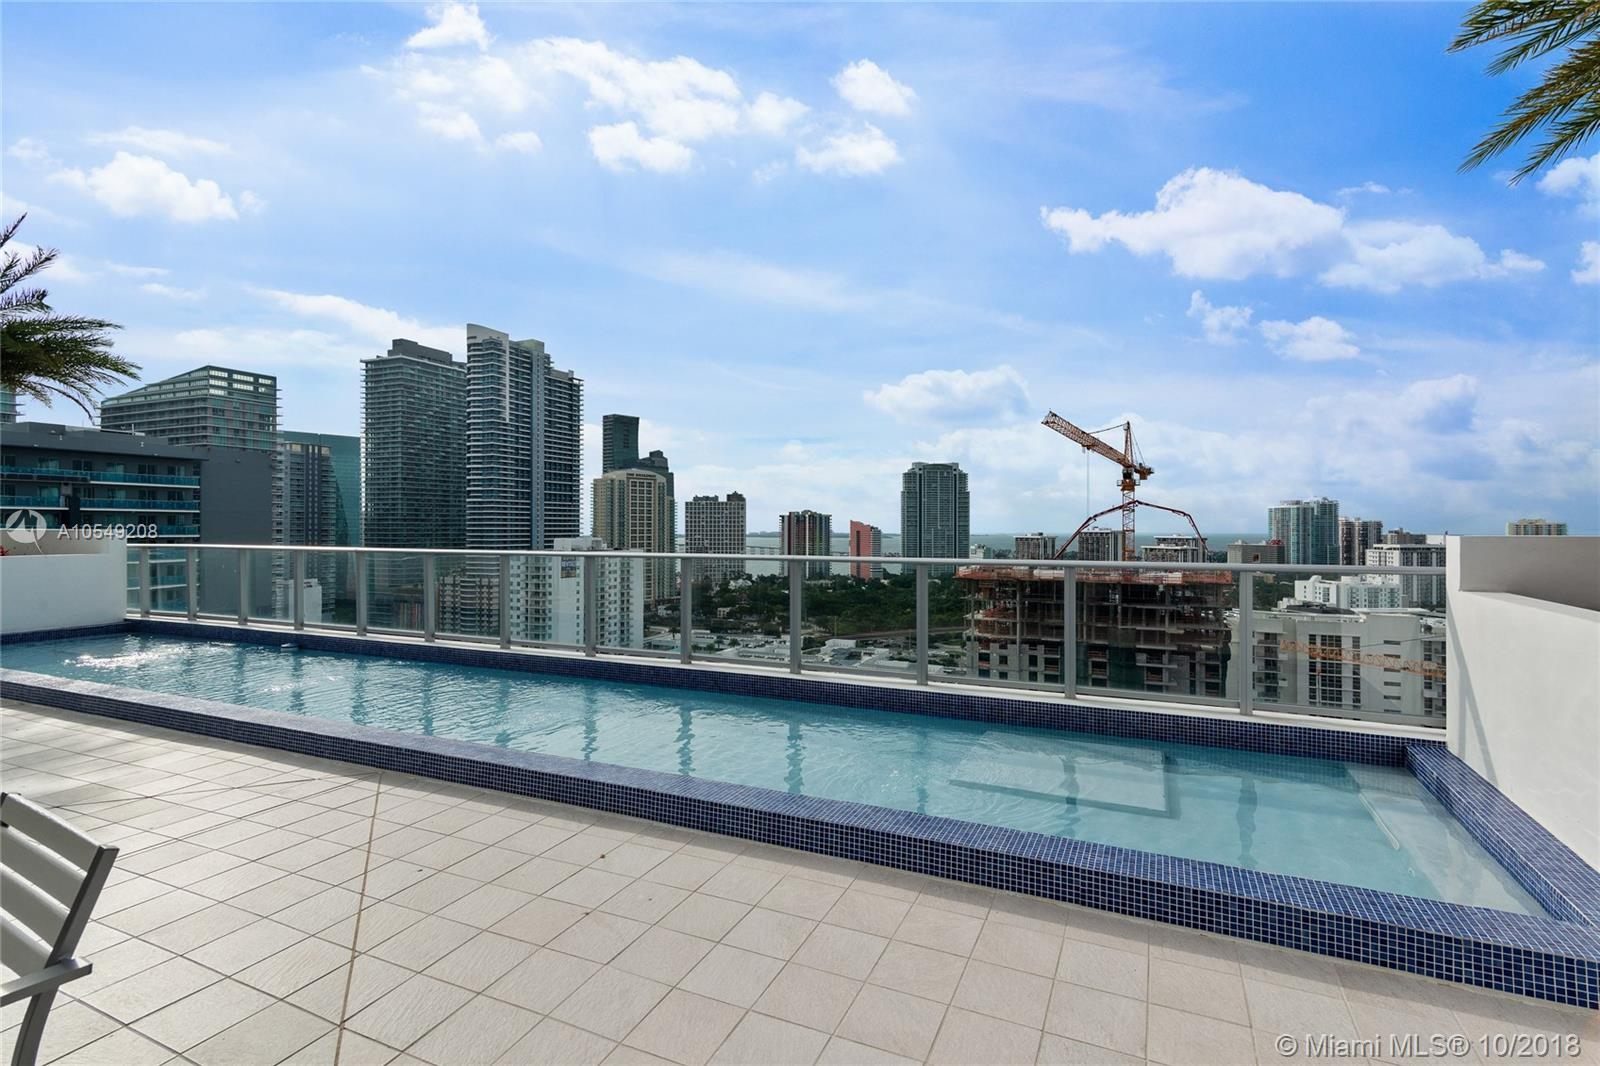 Brickell Ten image #11